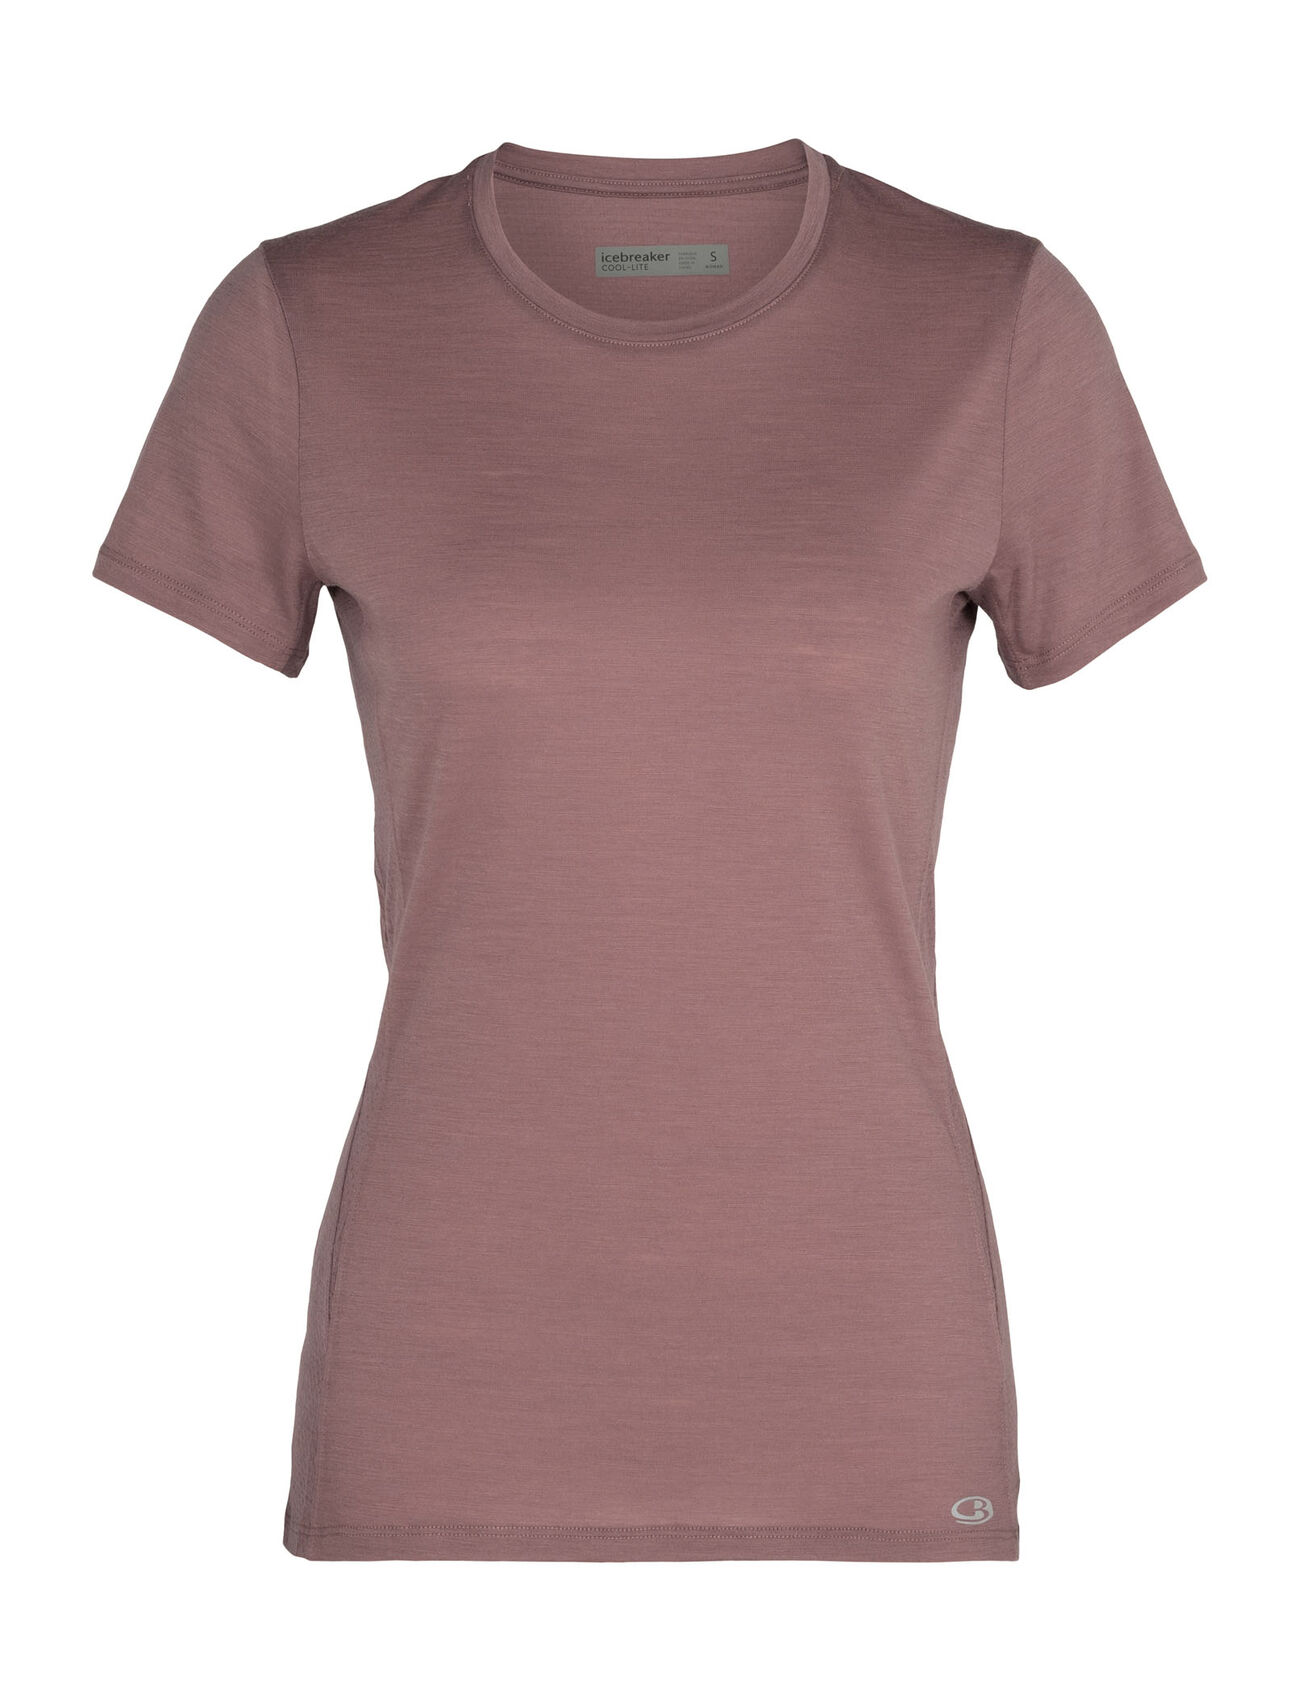 Donna T-shirt T-shirt con stampe Maniche corte Amplified Clothing